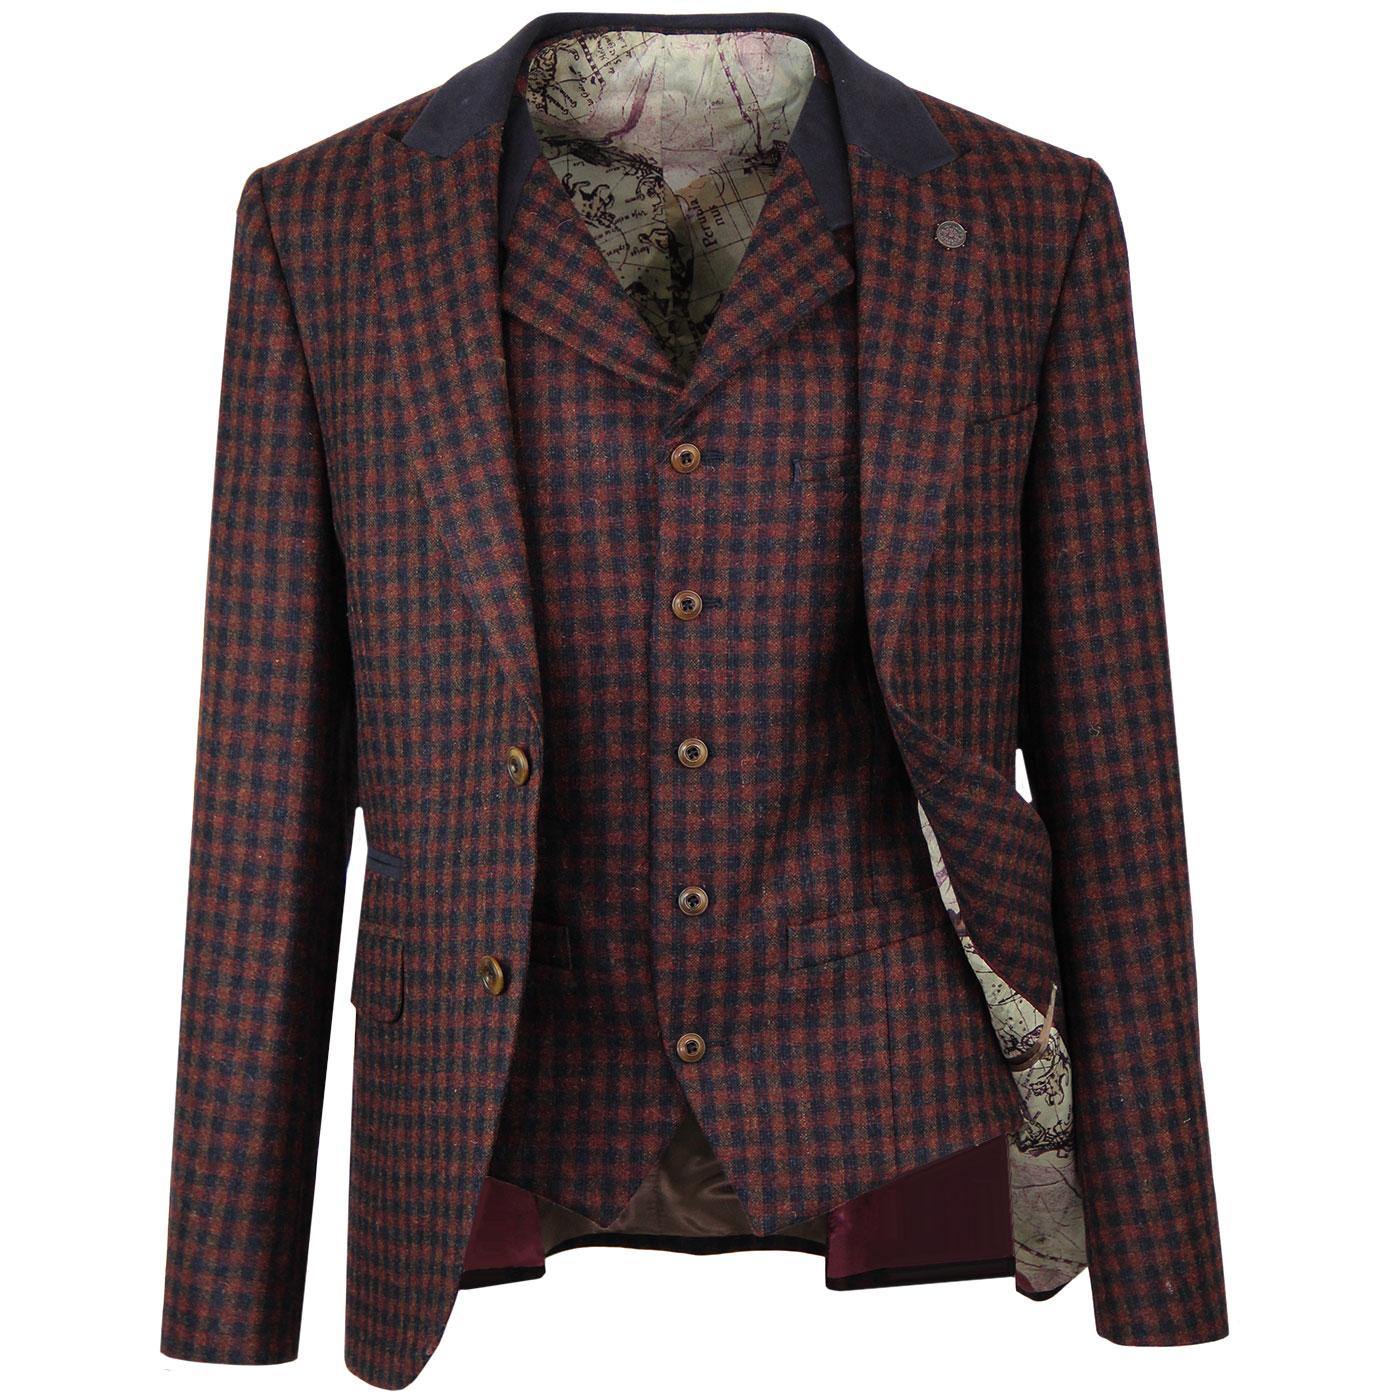 GIBSON LONDON Retro Teddy Boy Jacket & Waistcoat